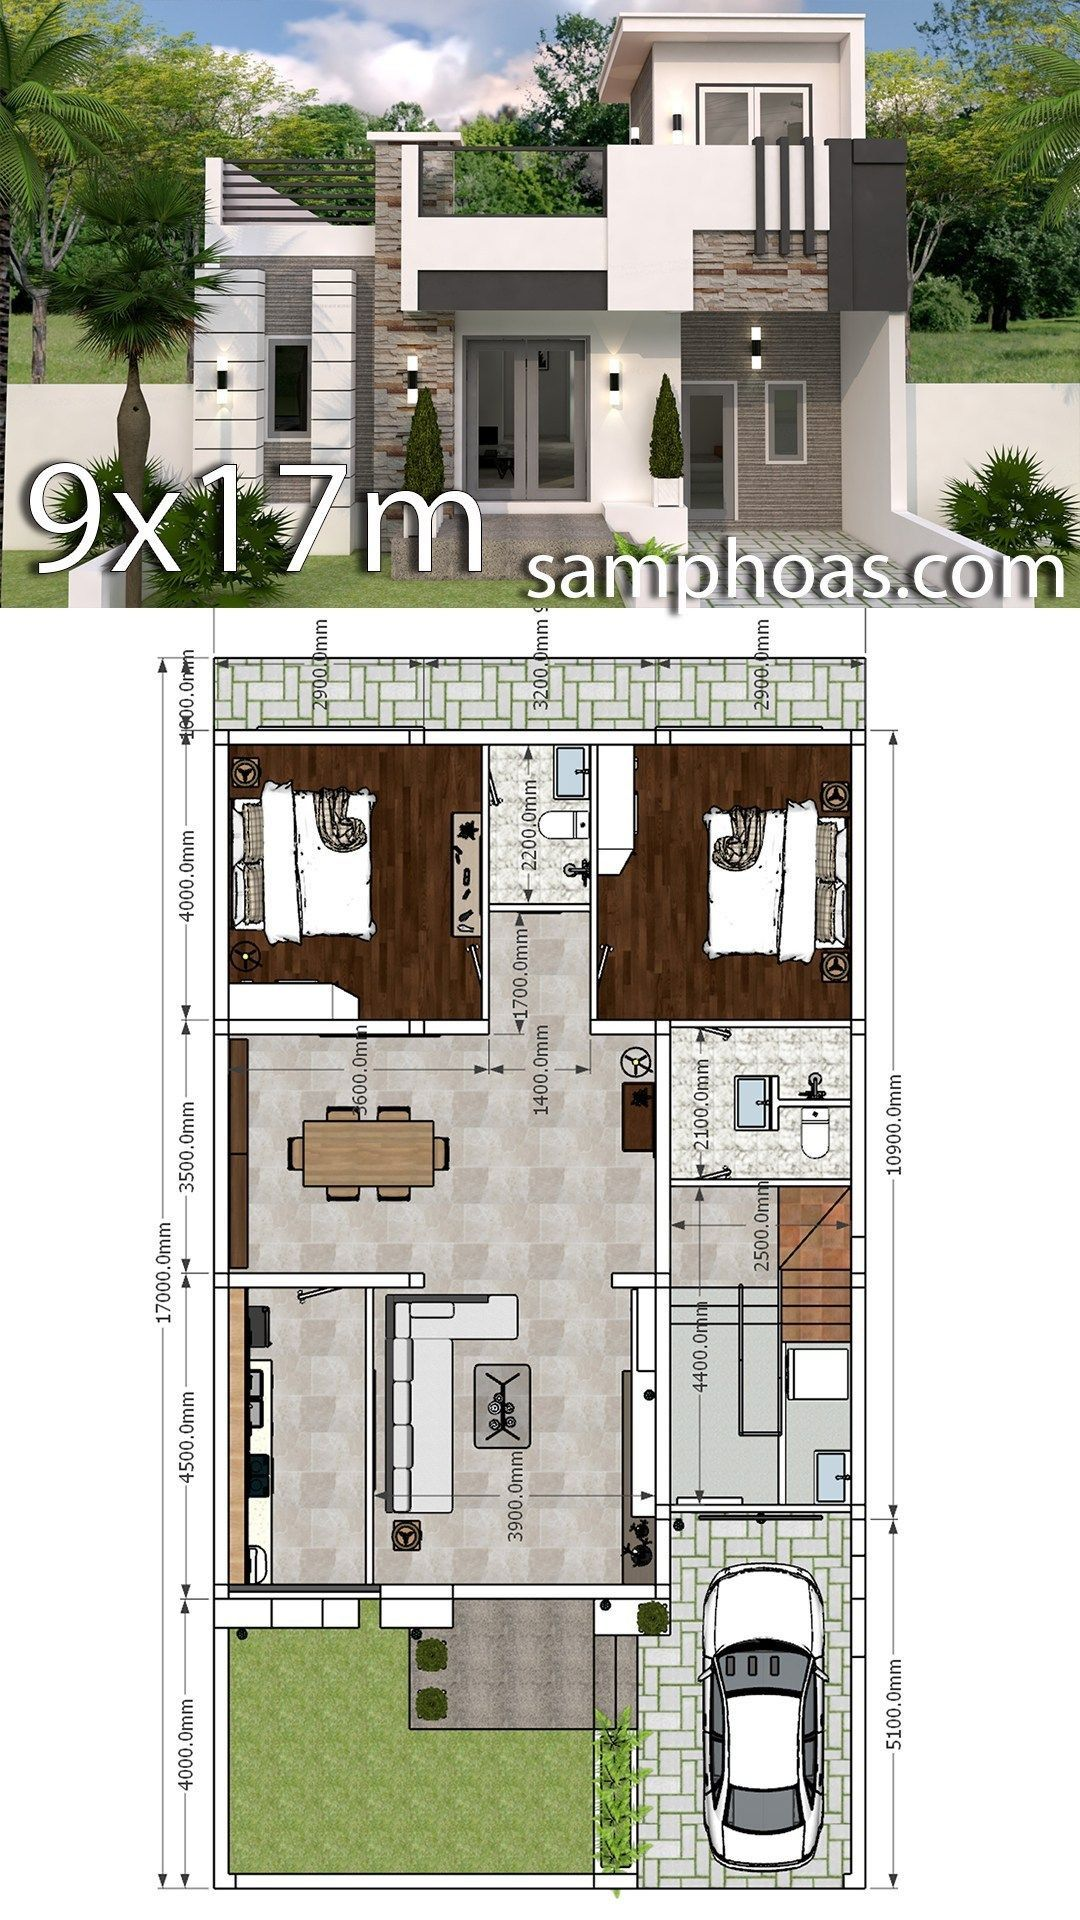 Interior House Plans With Photos 2020 Modern Style House Plans House Plans With Photos Home Design Plans